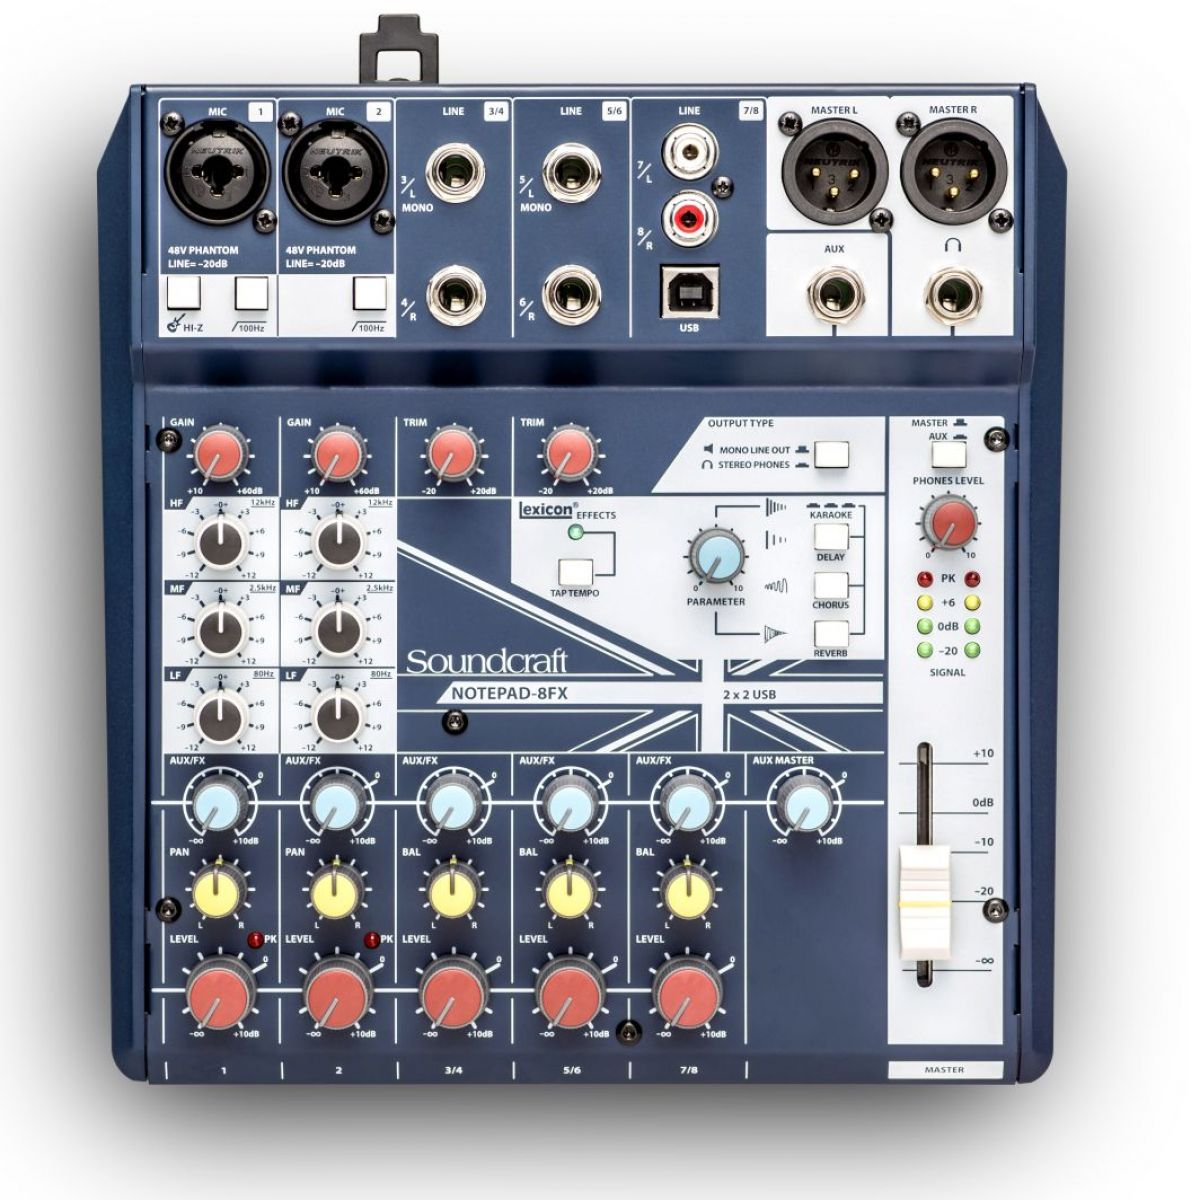 Soundcraft Notepad 8FX